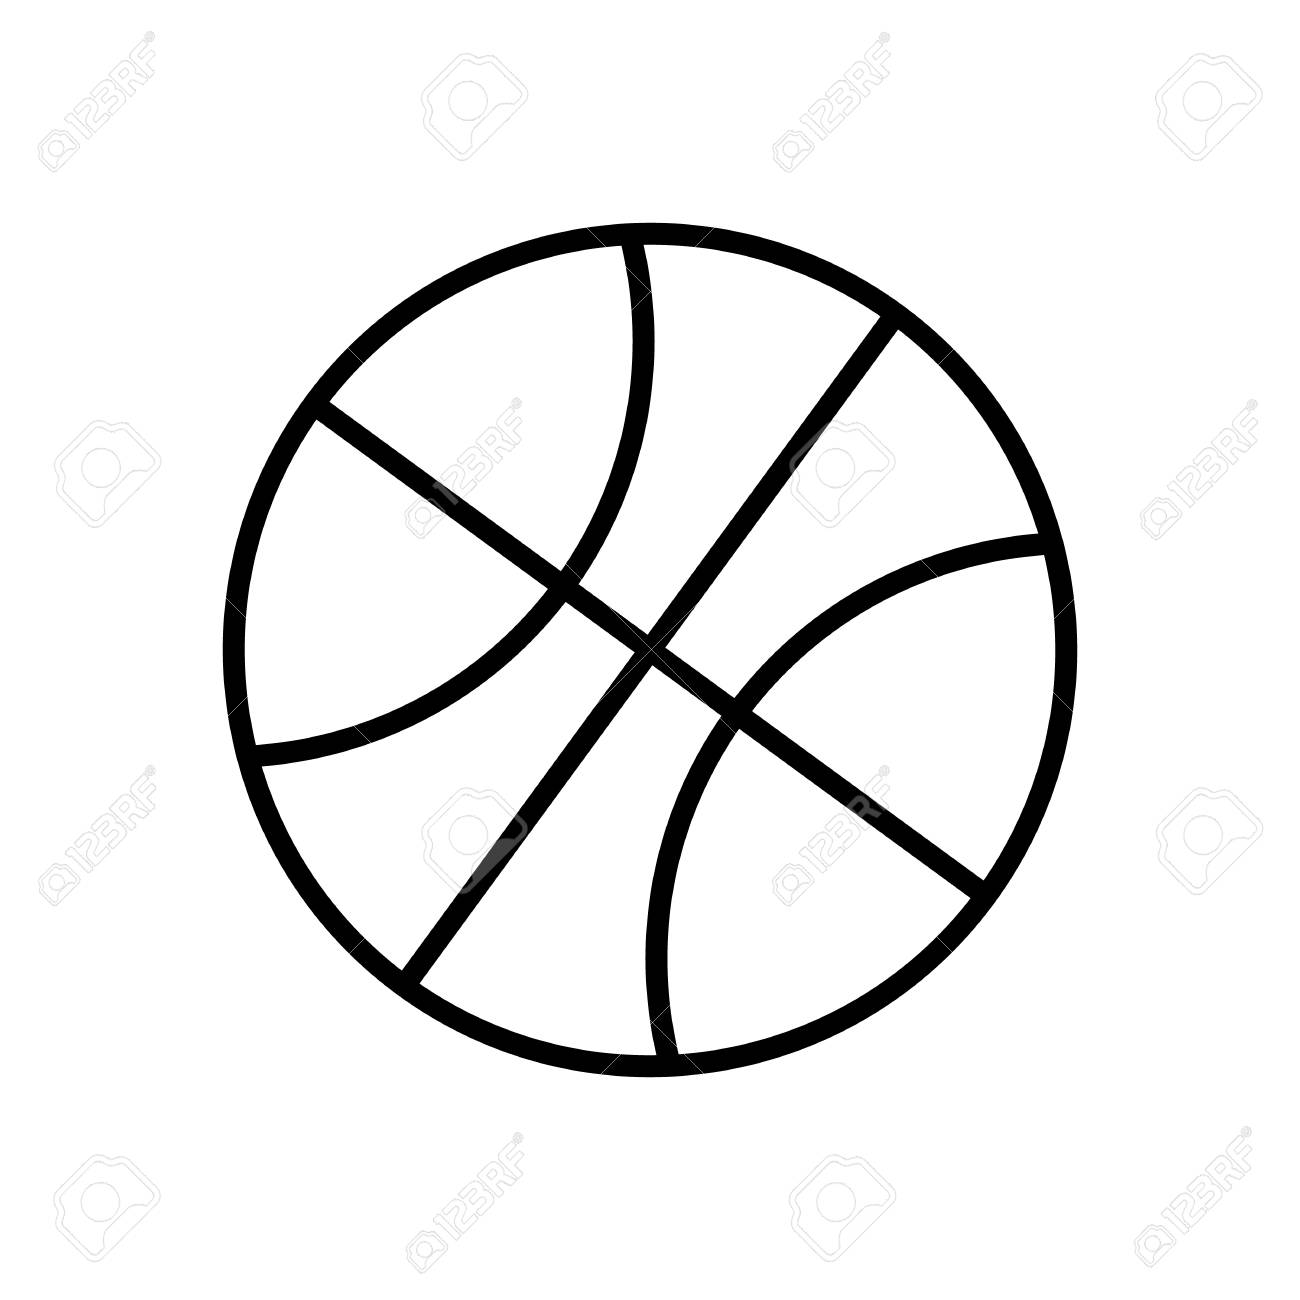 Black And White Basketball Ball Outline Vector Icon Isolated Stock Vector    82544673